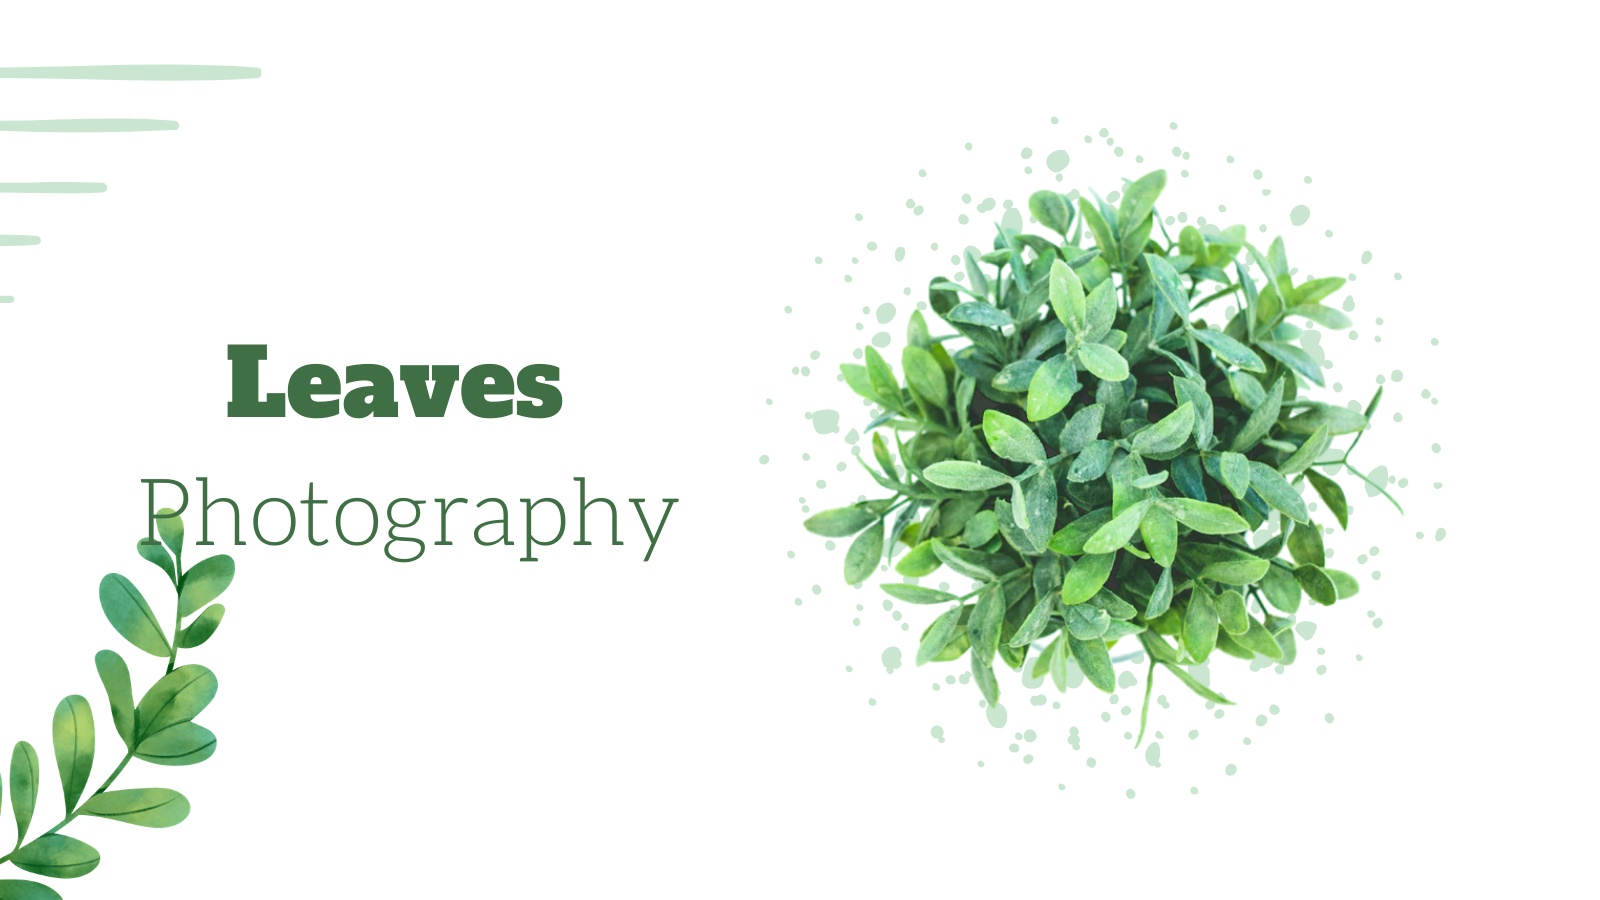 leaves-photography-challenge